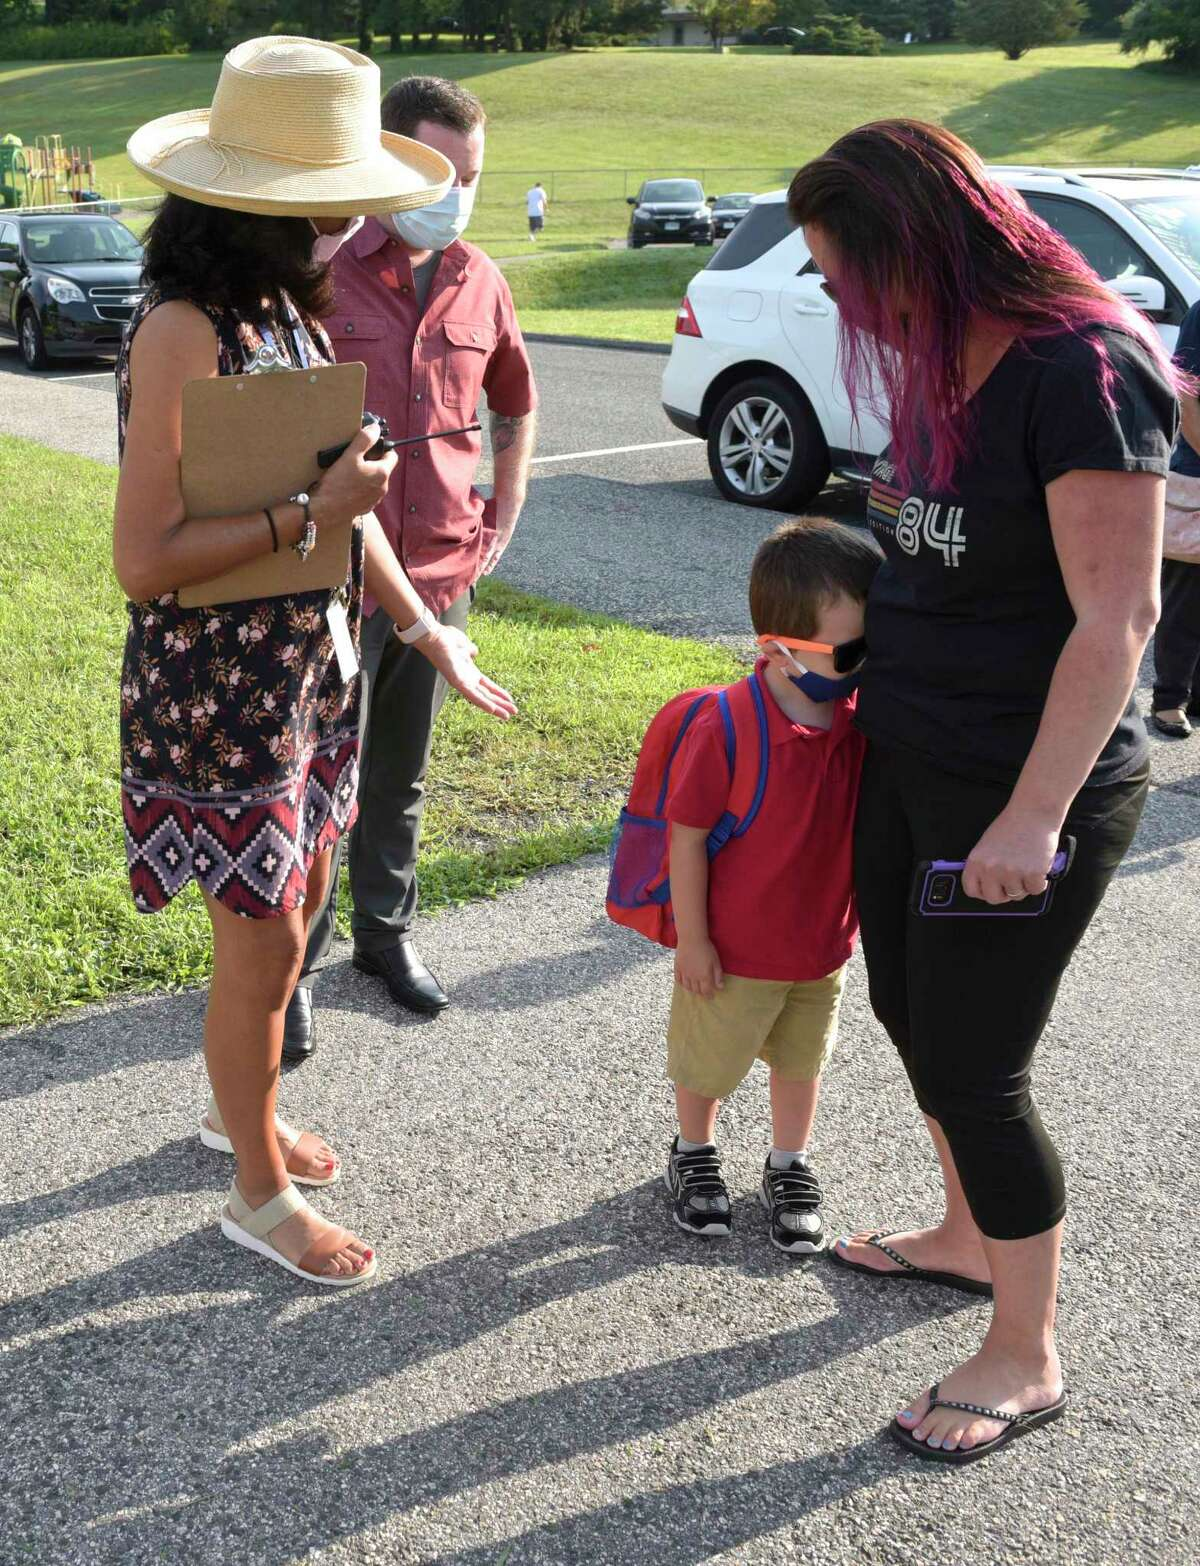 Heliett Sanches, school councilor, left, encourages Jackson Pettit, 5, to join her on the first day of the new school year at Hill and Plain Elementary School. Jackson's parents Laura and Chris Pettit offer support.New Milford, Conn. Wednesday, August 25, 2021. Jackson wore his special sunglasses for his first day of kindergarten.